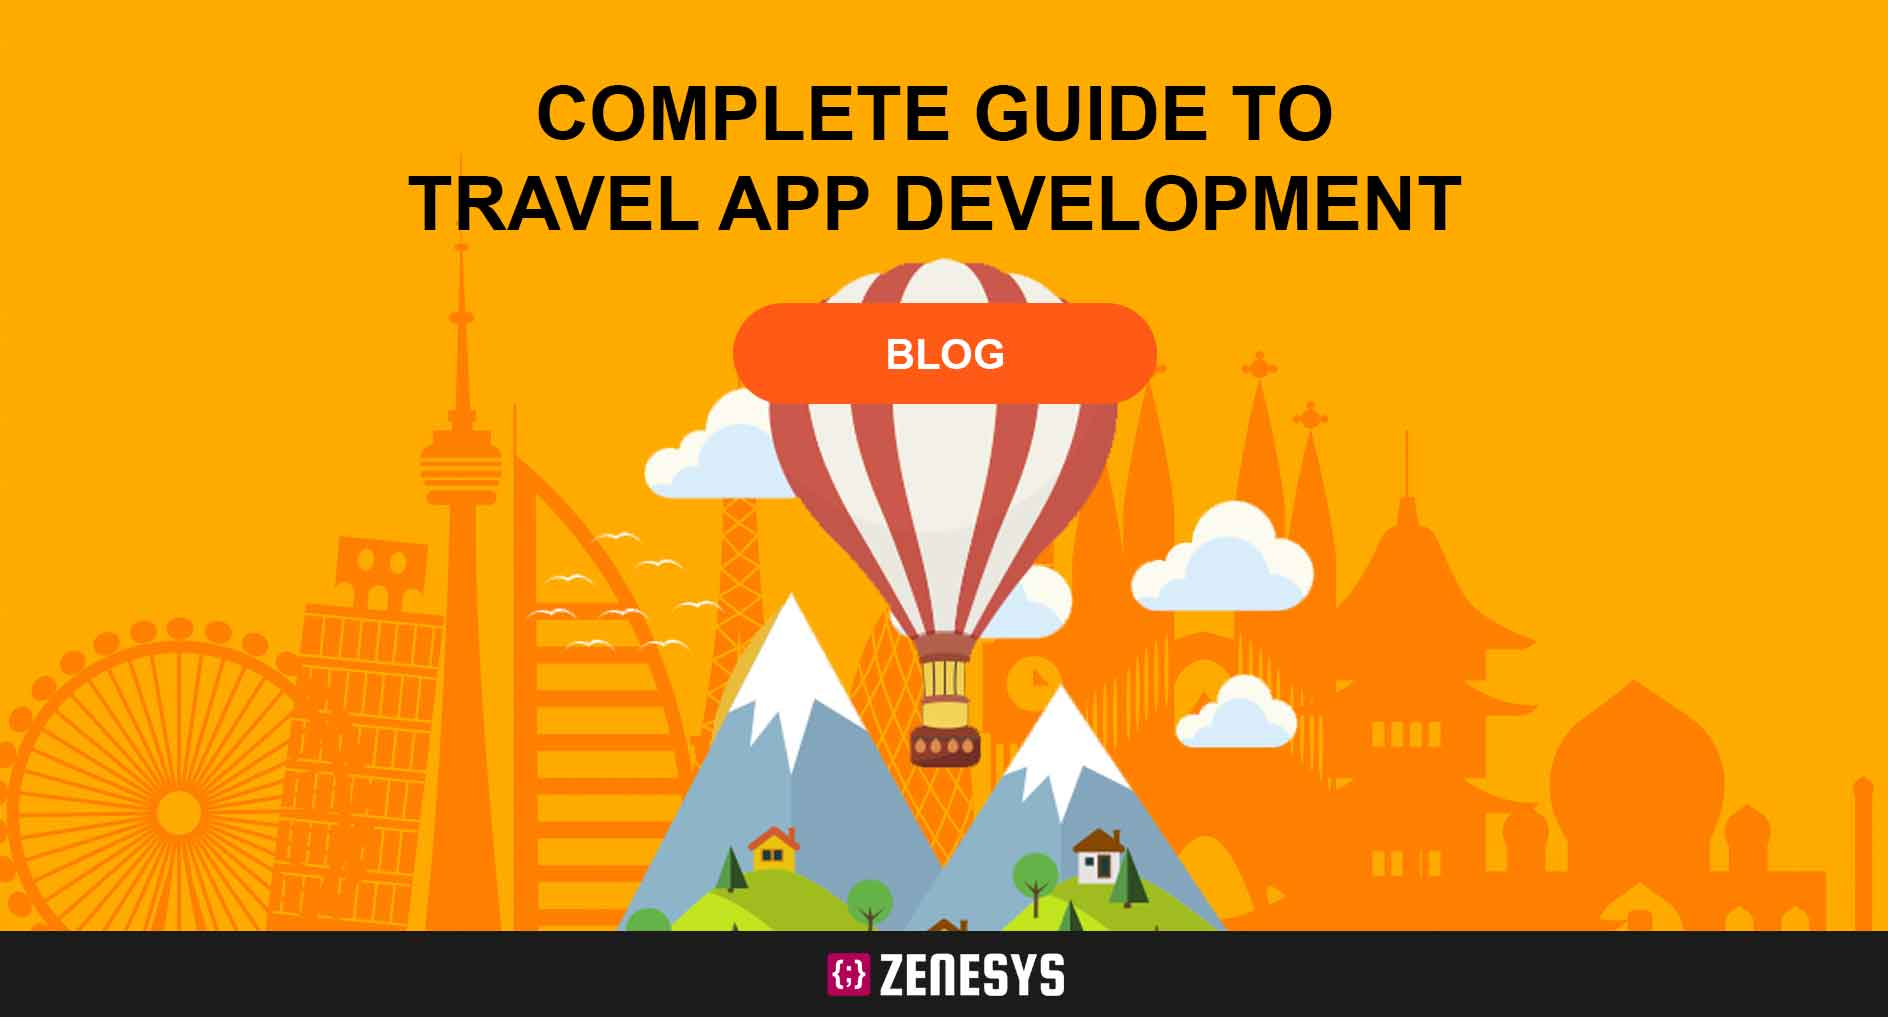 The Ultimate Guide on Travel App Development